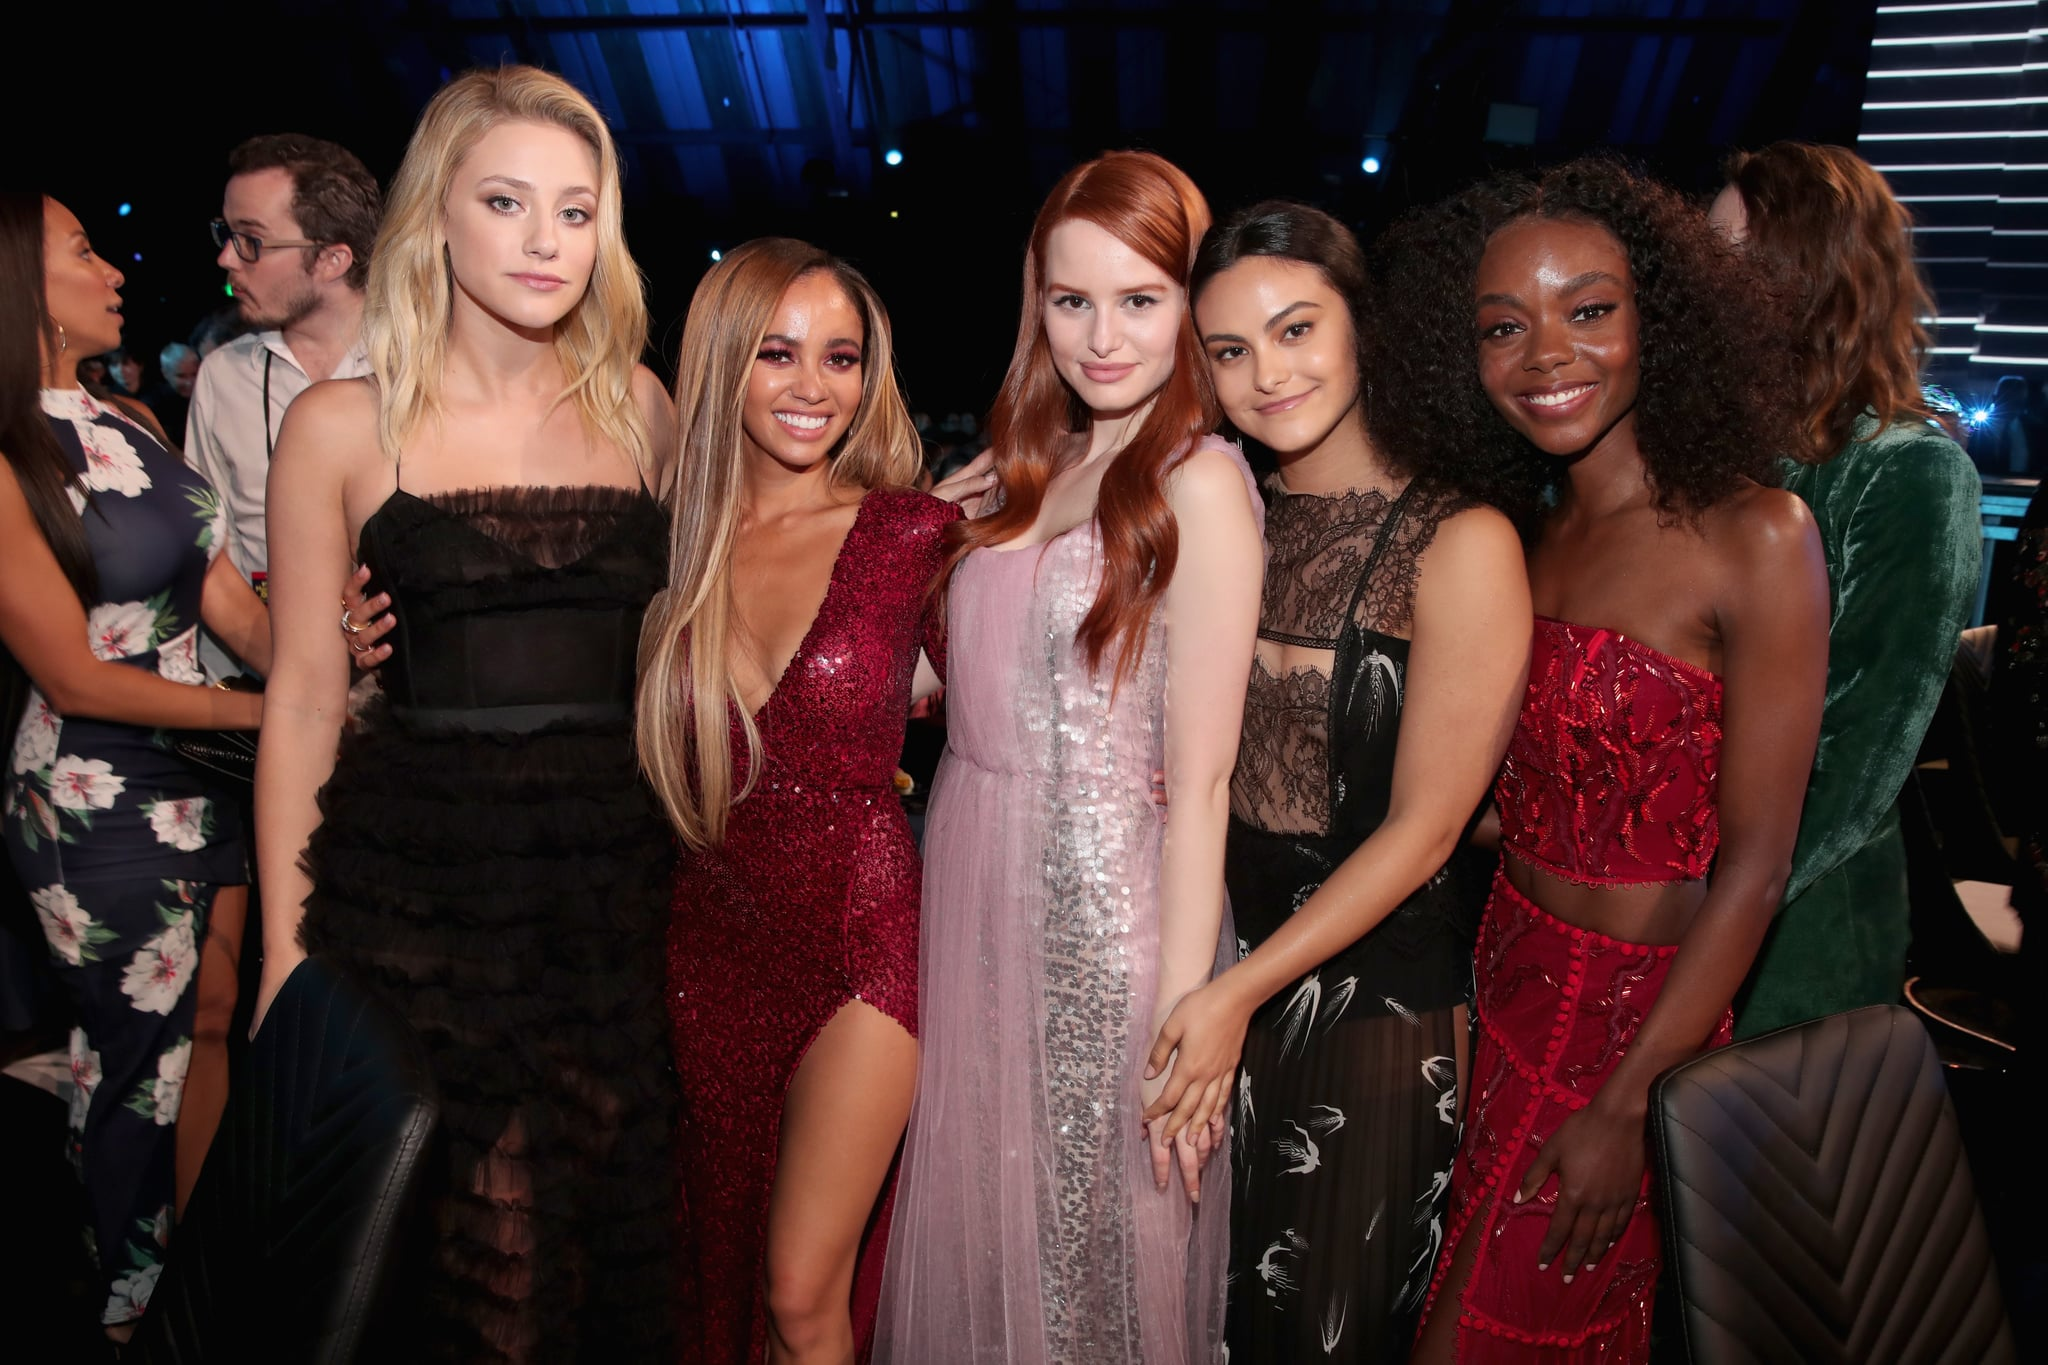 SANTA MONICA, CA - JUNE 16: (L-R) Actors Lili Reinhart,  Vanessa Morgan, Madelaine Petsch, Camila Mendes, and Ashleigh Murray pose during the 2018 MTV Movie And TV Awards at Barker Hangar on June 16, 2018 in Santa Monica, California.  (Photo by Chris Polk/VMN18/Getty Images for MTV)